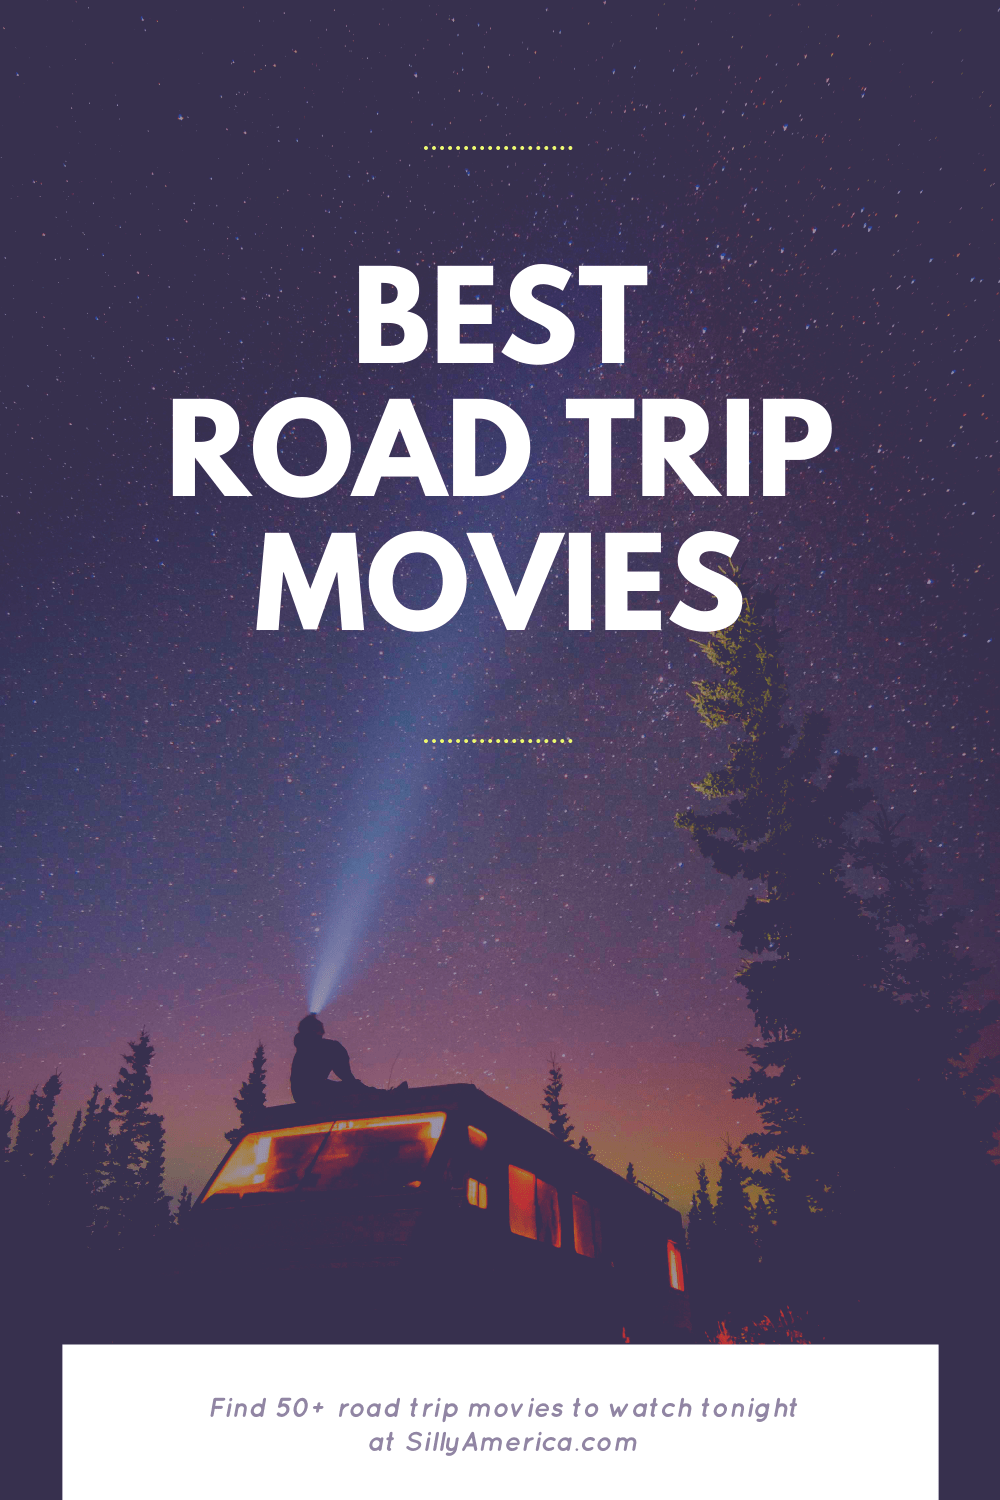 Who doesn't love a good road trip movie? Movies that capture the thrill, the fun, and, yes, sometimes the dangers of hitting the open road. Here are some of the best road trip movies to watch tonight, films that epitomize car travel. You'll find something for everyone: comedies, dramas, family-friendly, horror, classics, and more. Ready to watch? I'll make the popcorn! #RoadTrip #RoadTrips #RoadTripMovies #Movies #RoadTripInspiration